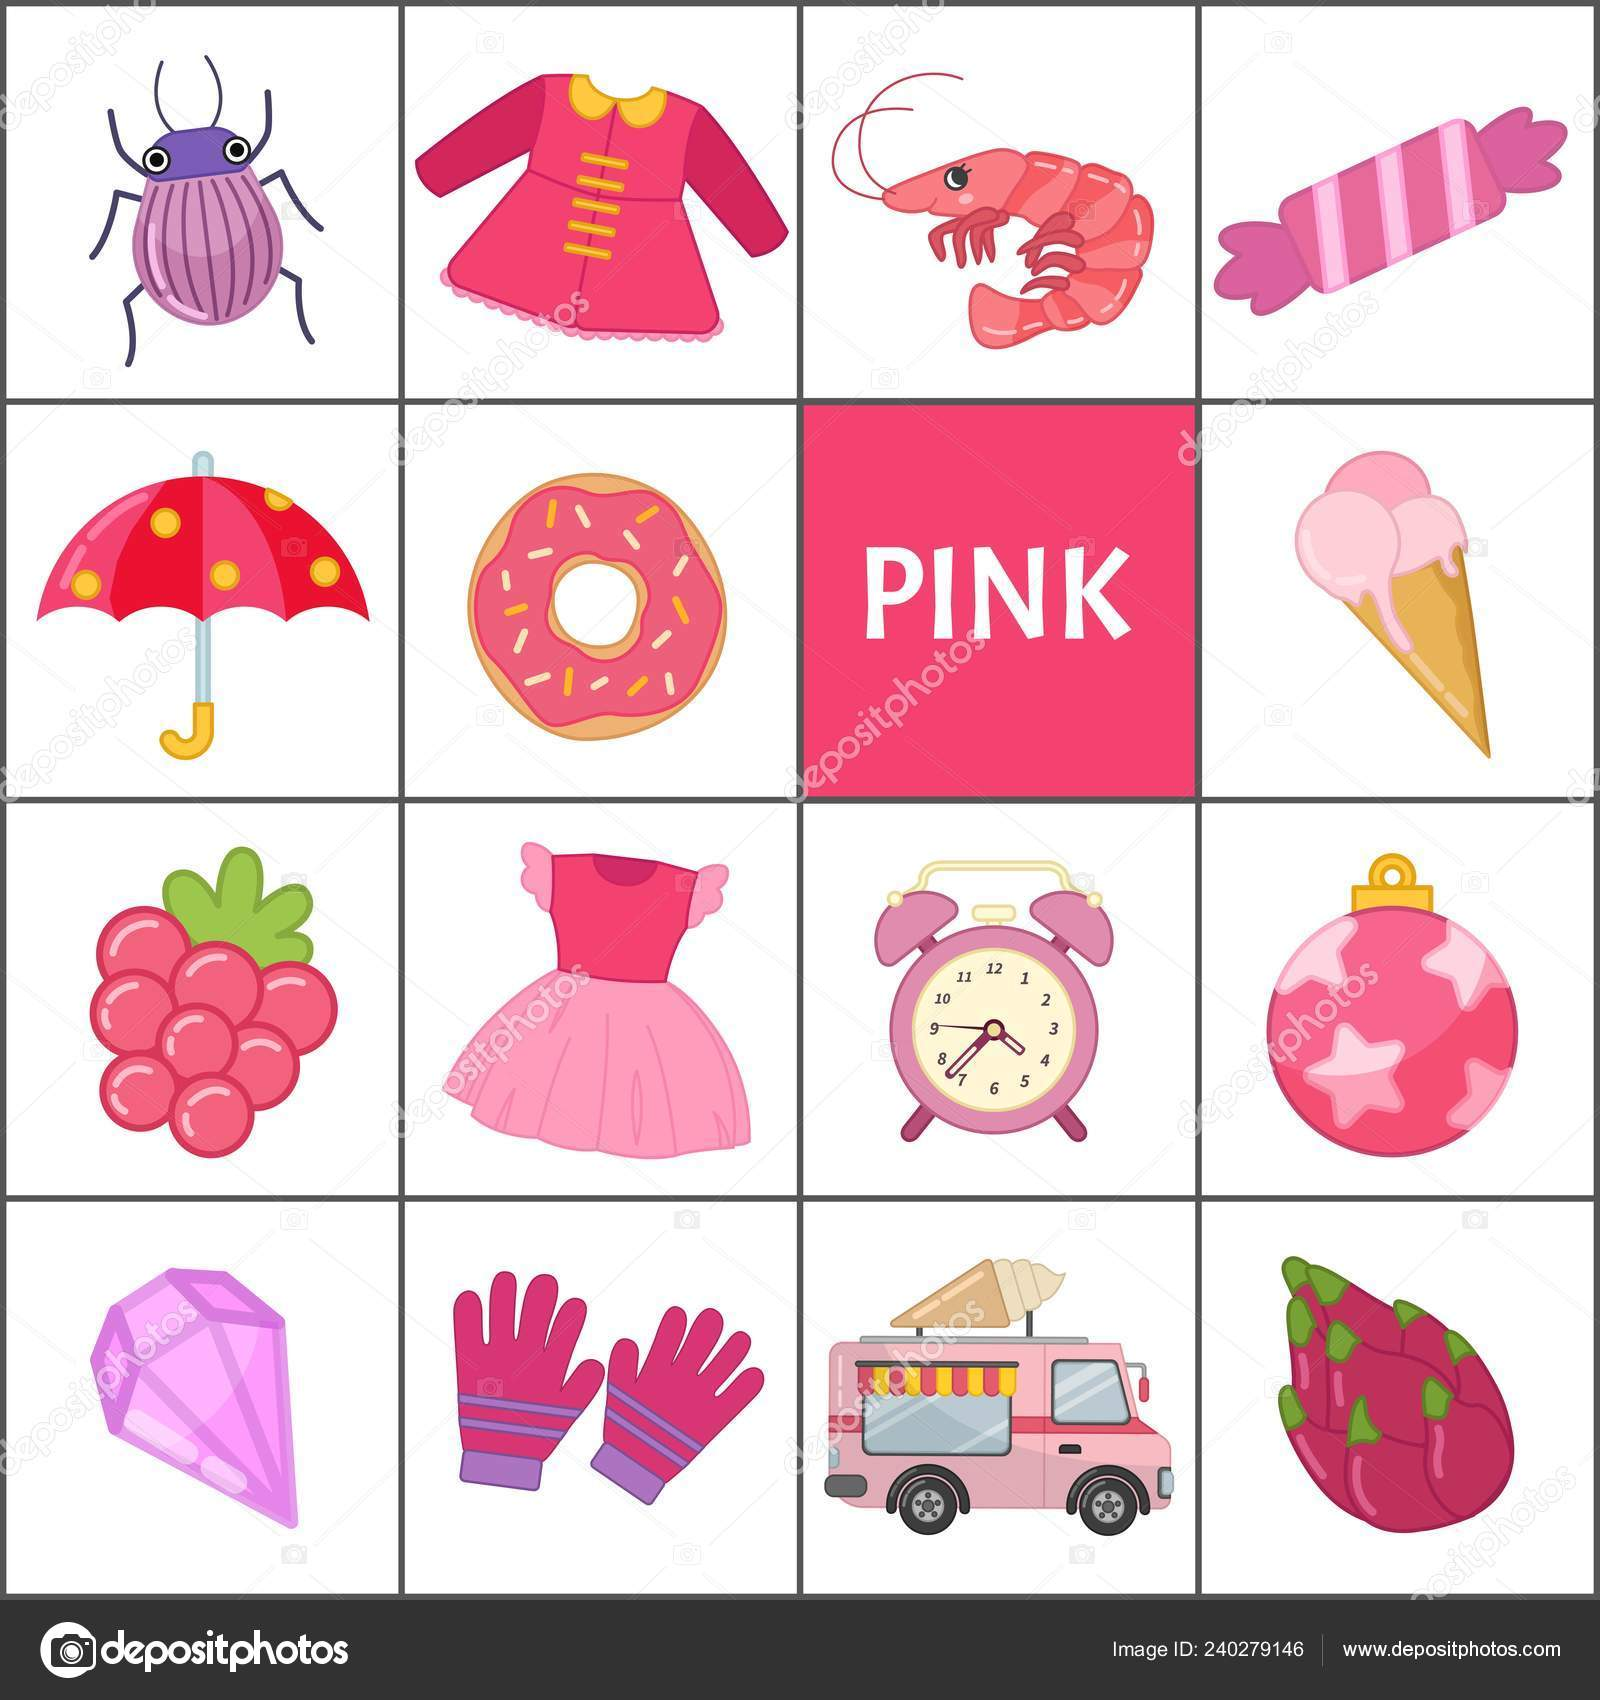 Learn Primary Colors Pink Different Objects Pink Color